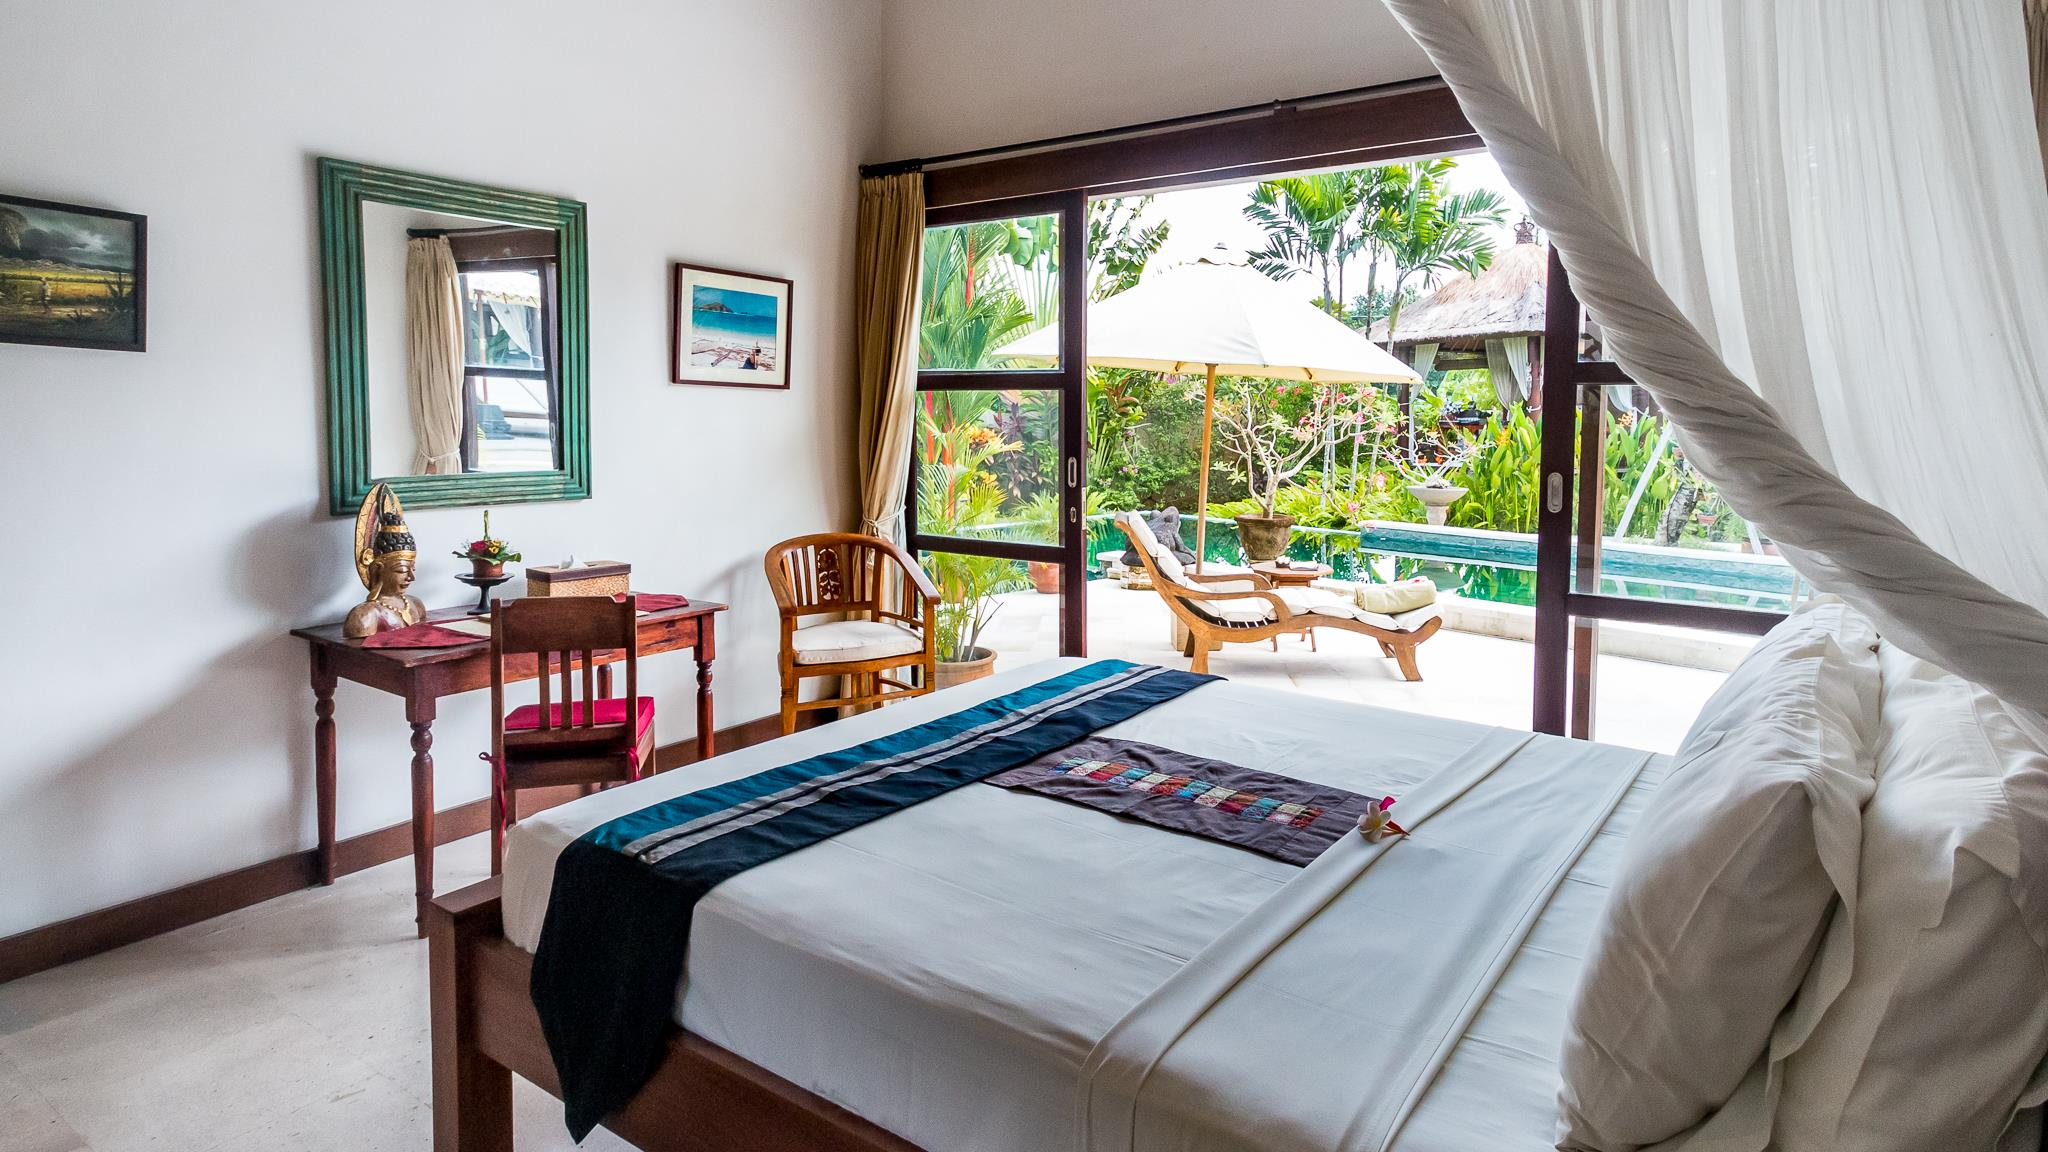 Bedroom with View - Villa Tibu Indah - Canggu, Bali